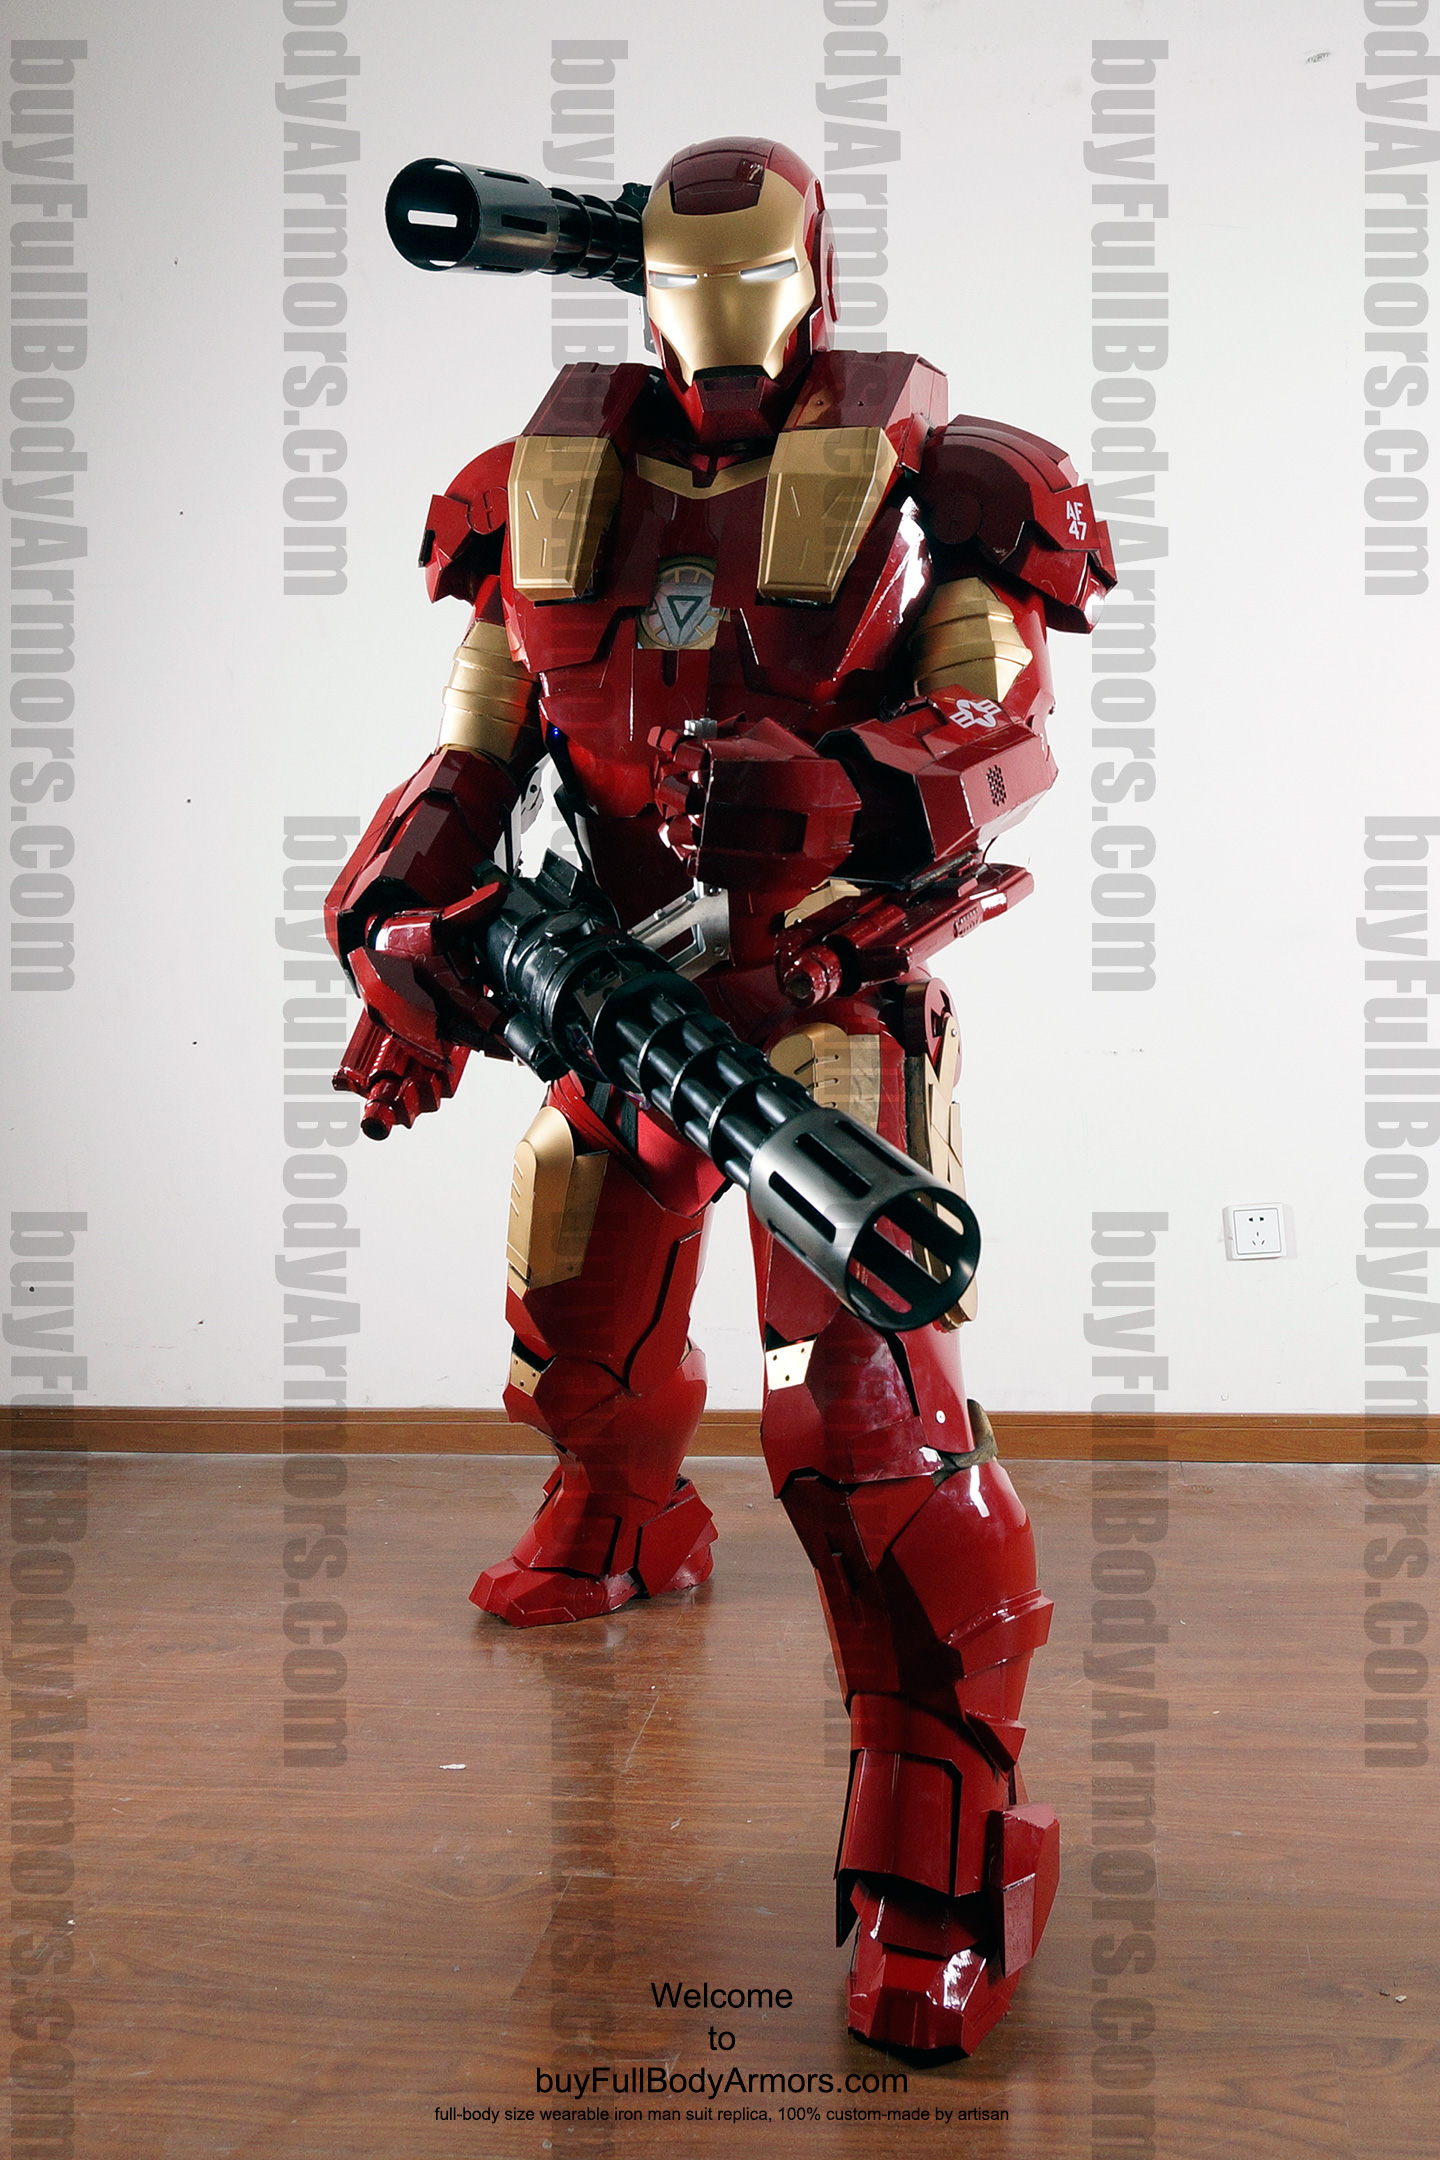 Buy Iron Man suit, Halo Master Chief armor, Batman costume